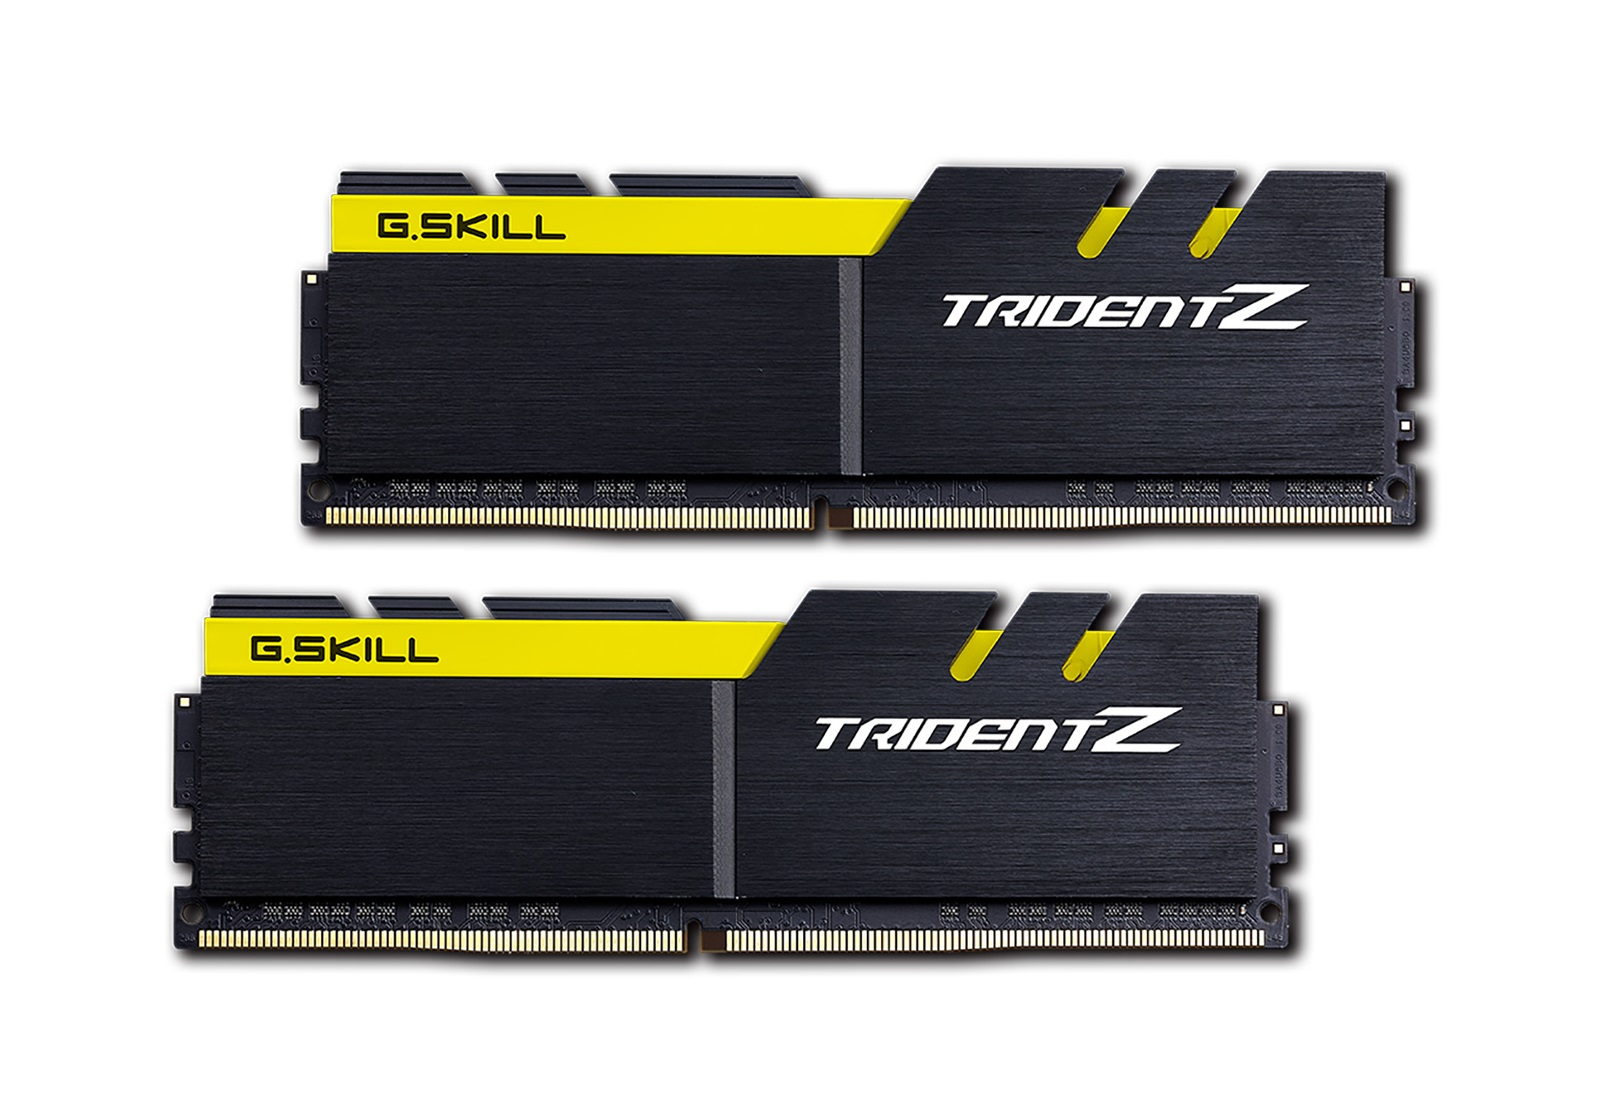 32GB G.Skill DDR4 Trident Z 3200Mhz PC4-25600 CL15 Yellow/Black 1.35V Quad Channel Kit (2x16GB)